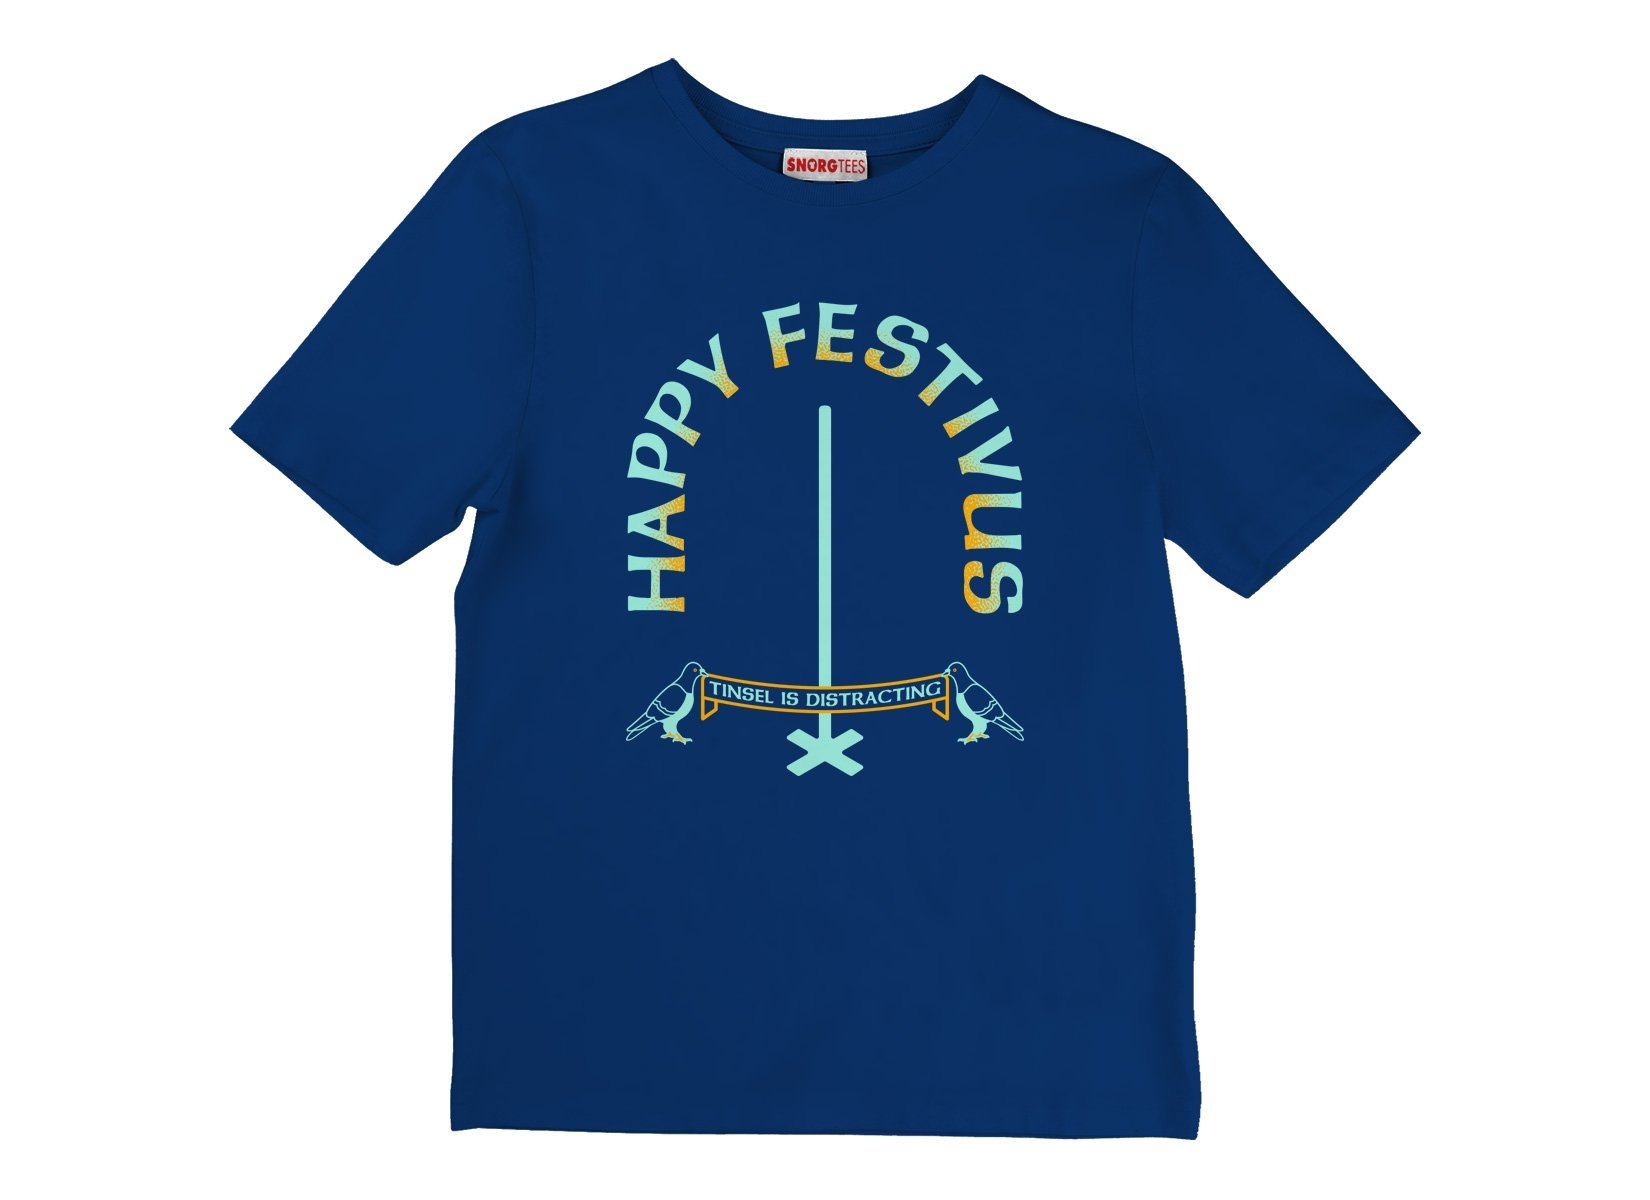 Happy Festivus on Kids T-Shirt